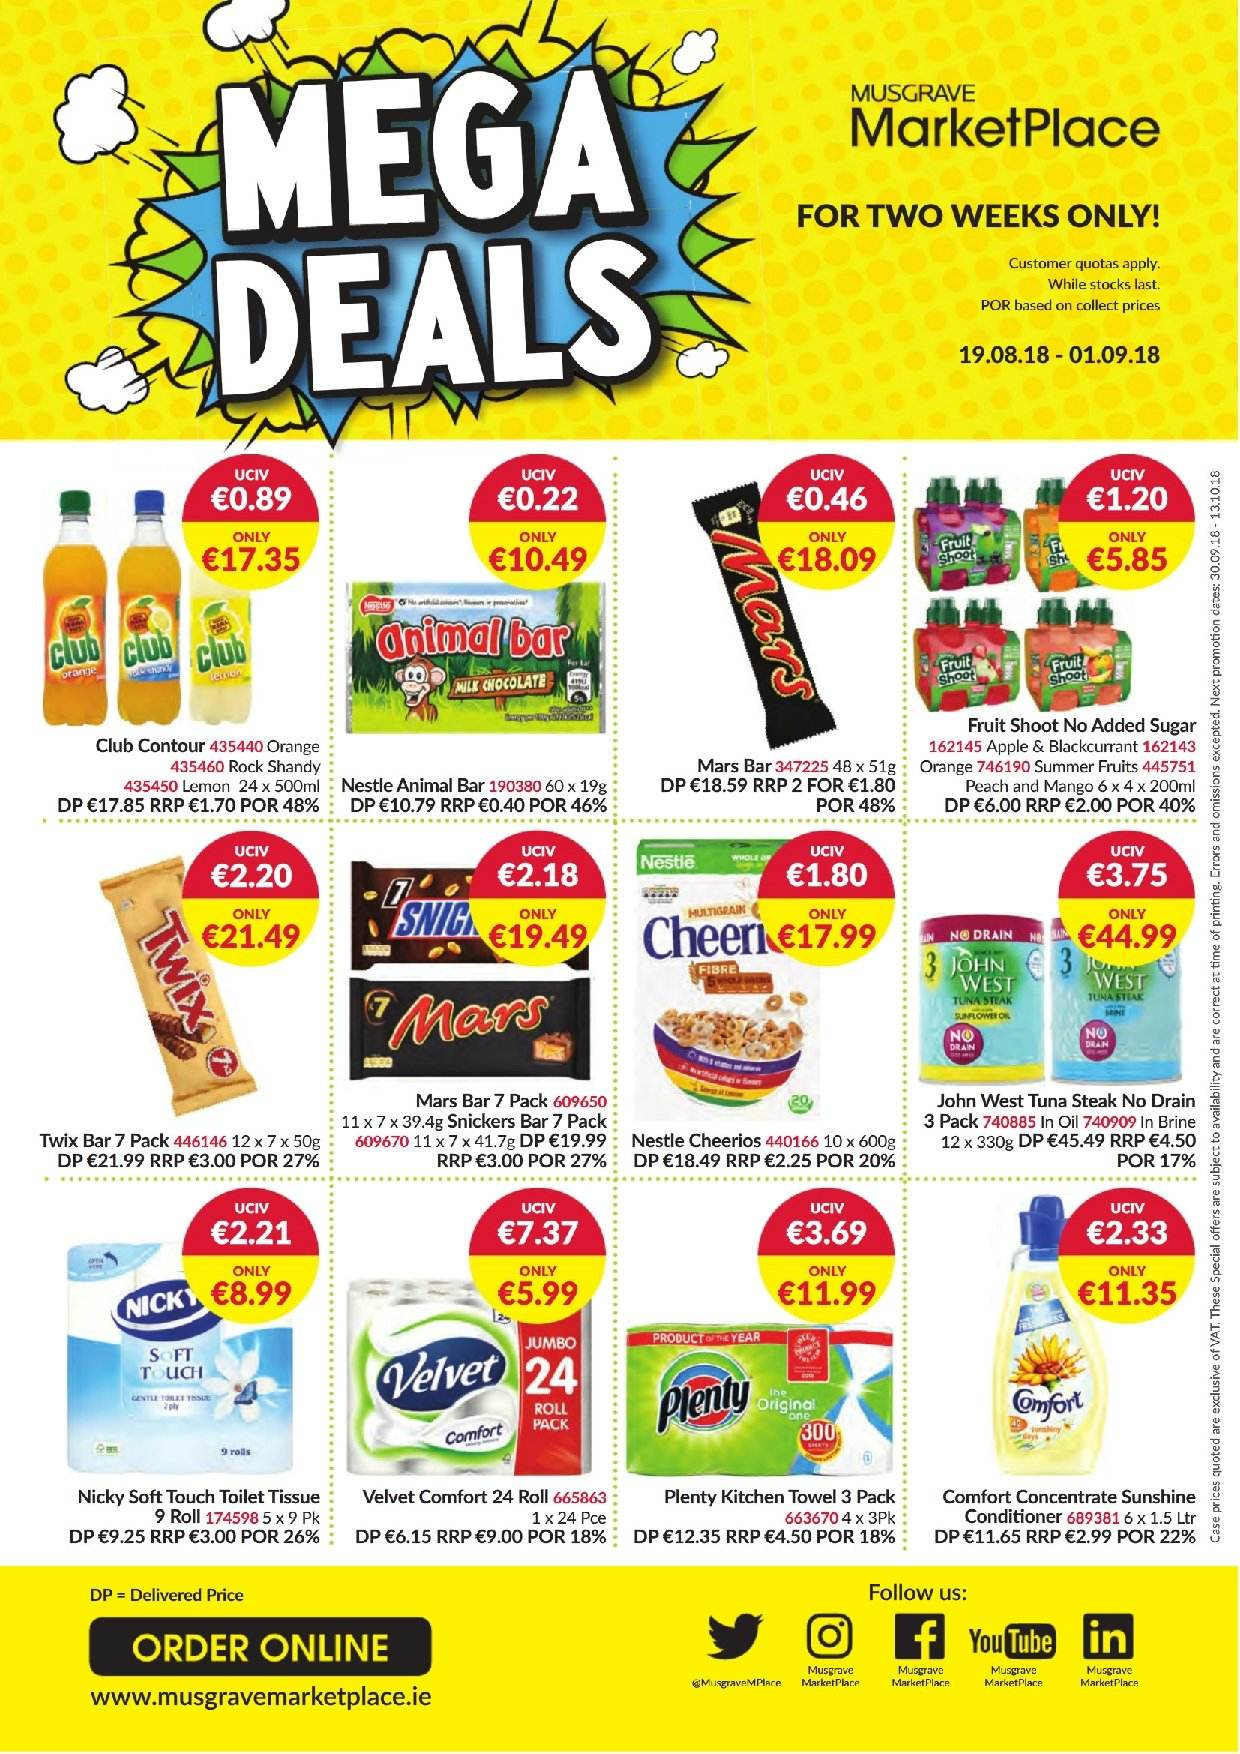 MUSGRAVE Market Place offer  - 19.8.2018 - 1.9.2018 - Sales products - apple, conditioner, mango, nestlé, sugar, toilet, towel, tuna, tuna steak, kitchen, cheerios, chocolate, steak, contour, bar, snickers, twix, mars. Page 1.